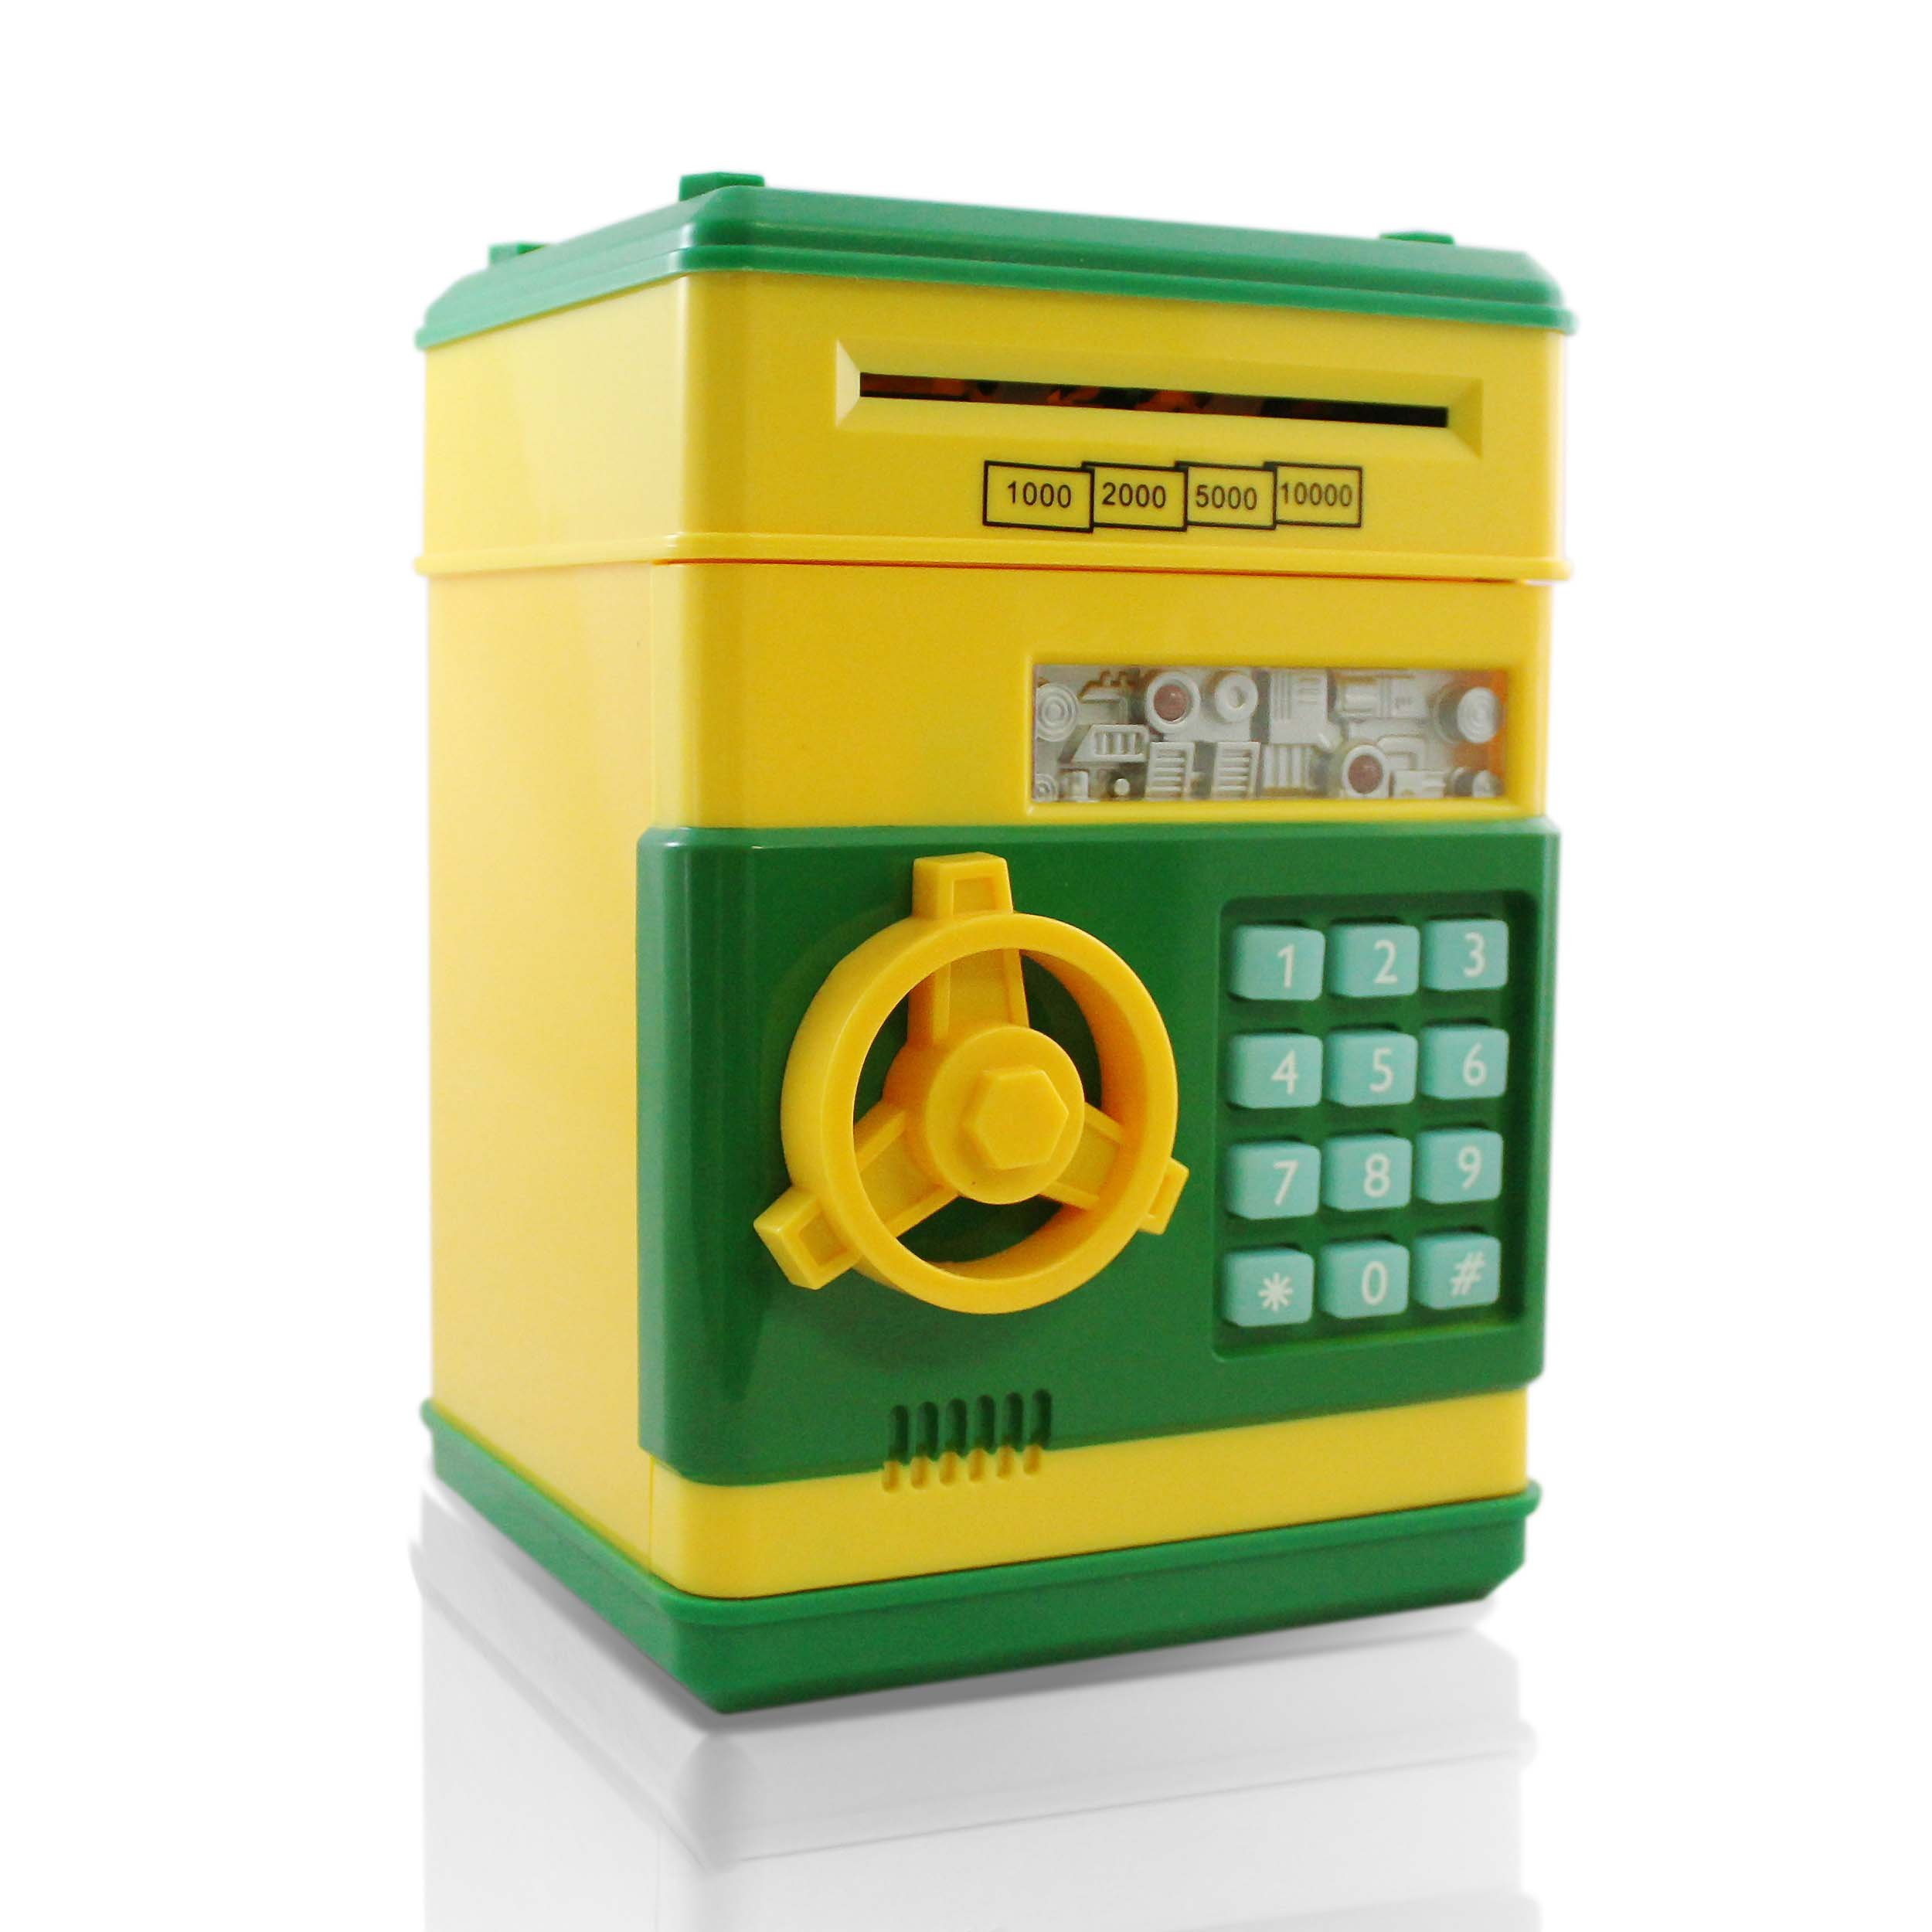 Yellow Green Safe Coin Bank For Kids - Authentic ATM Money Saver Keeps Cash, Toys, and Jewelry Safe Inside - Auto Insert Bills and Electronic Password - Cool Piggy Bank Makes A Great Birthday Gift